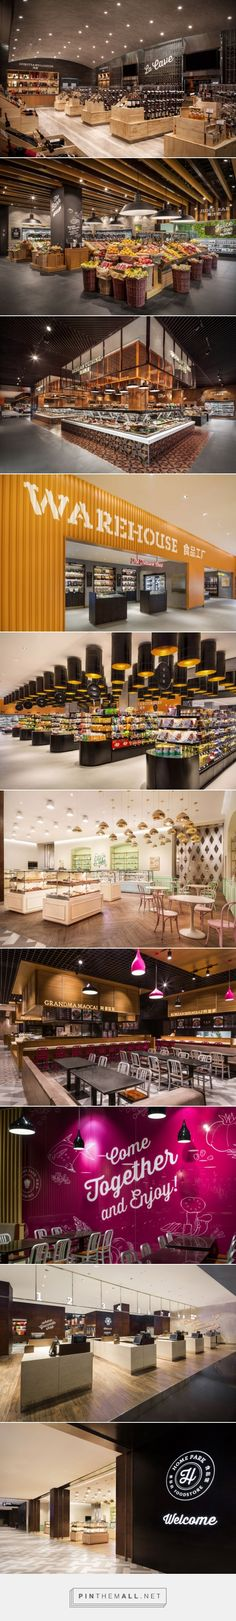 If I had a restaurant, it would be starry night caravan or Art Deco luxe smoky hideaway with cappuccinos. This is Home Park Food Store by TRIAD China, Harbin Retail Interior Design, Retail Store Design, Commercial Design, Commercial Interiors, Commercial Lighting, Espace Design, Fruit Shop, Food Retail, Harbin